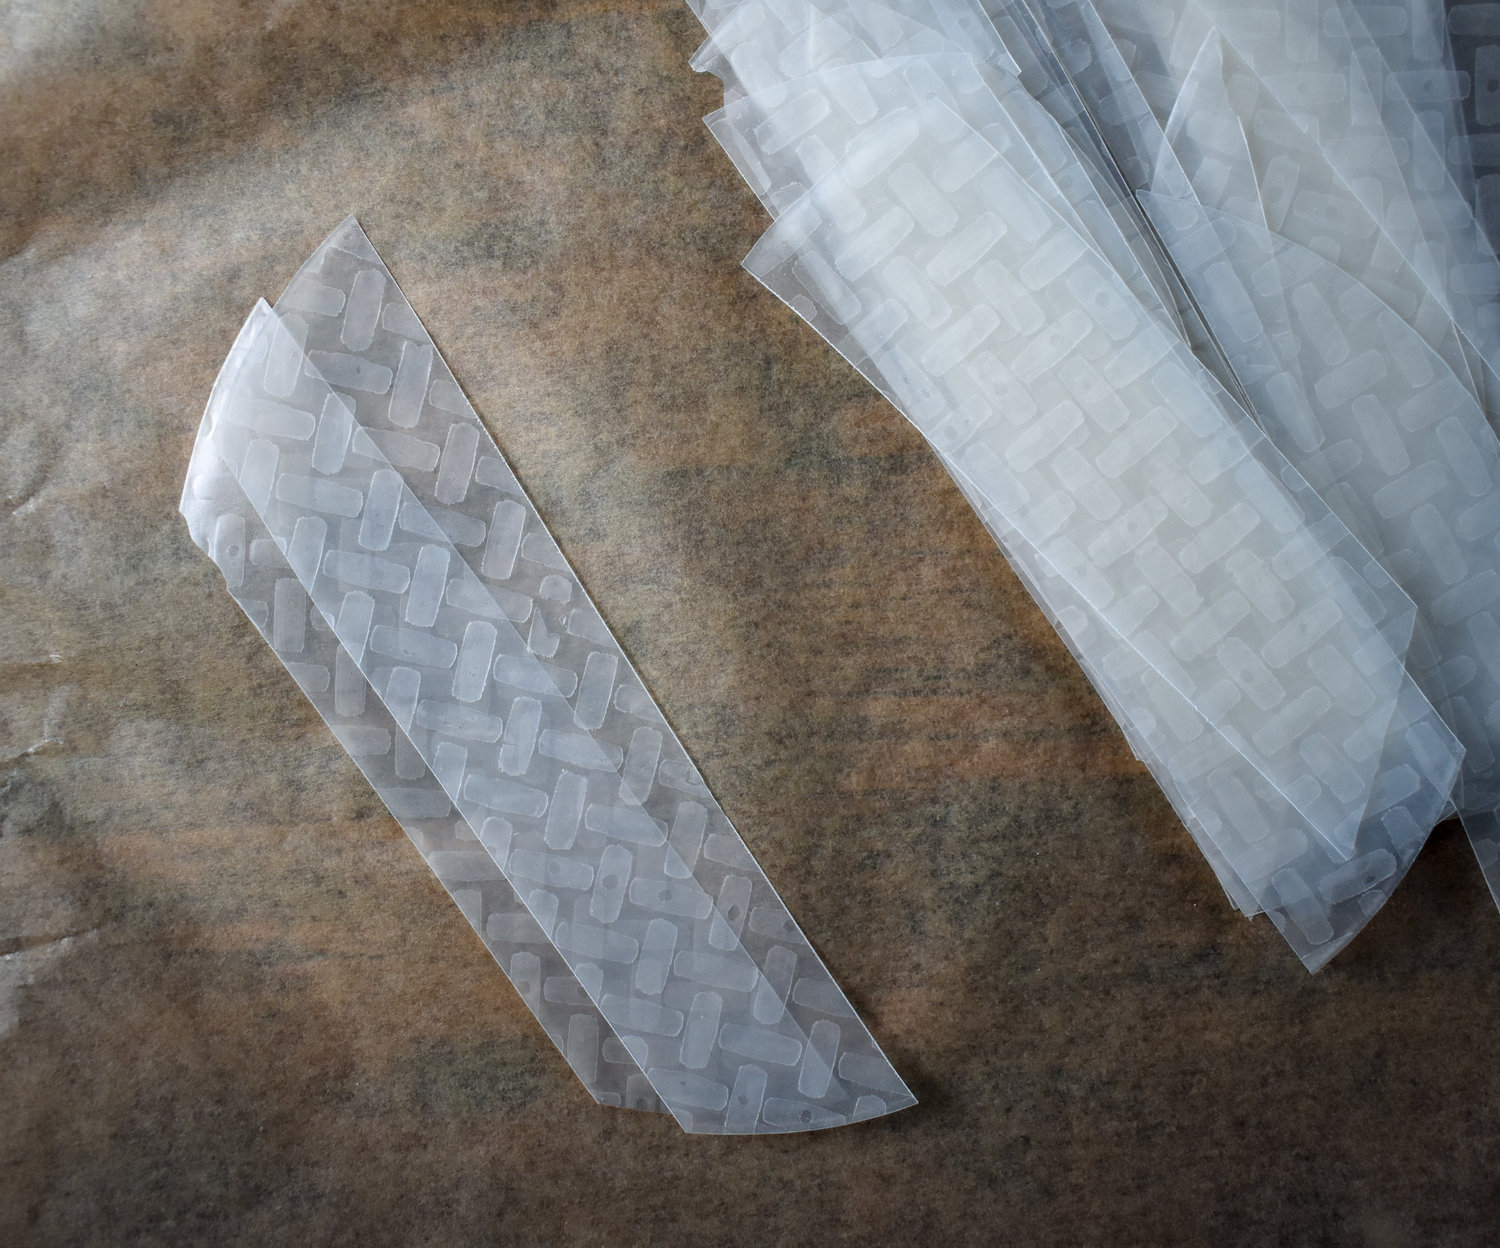 2. To form, find two like pieces of rice paper and stack them together. I like to stack all my pairs on a parchment sheet before wetting.